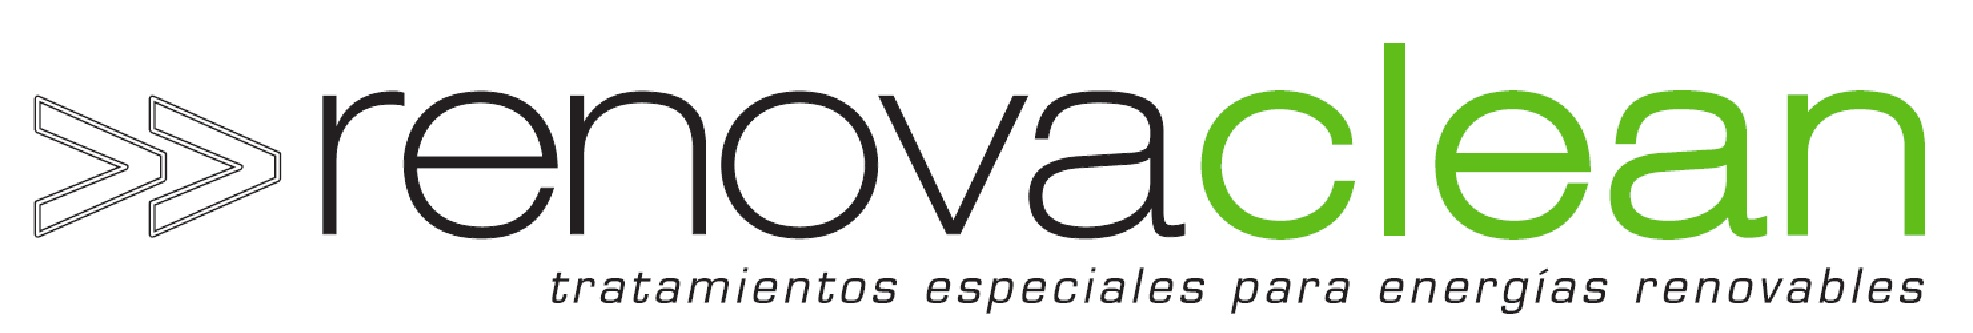 logo renovaclean